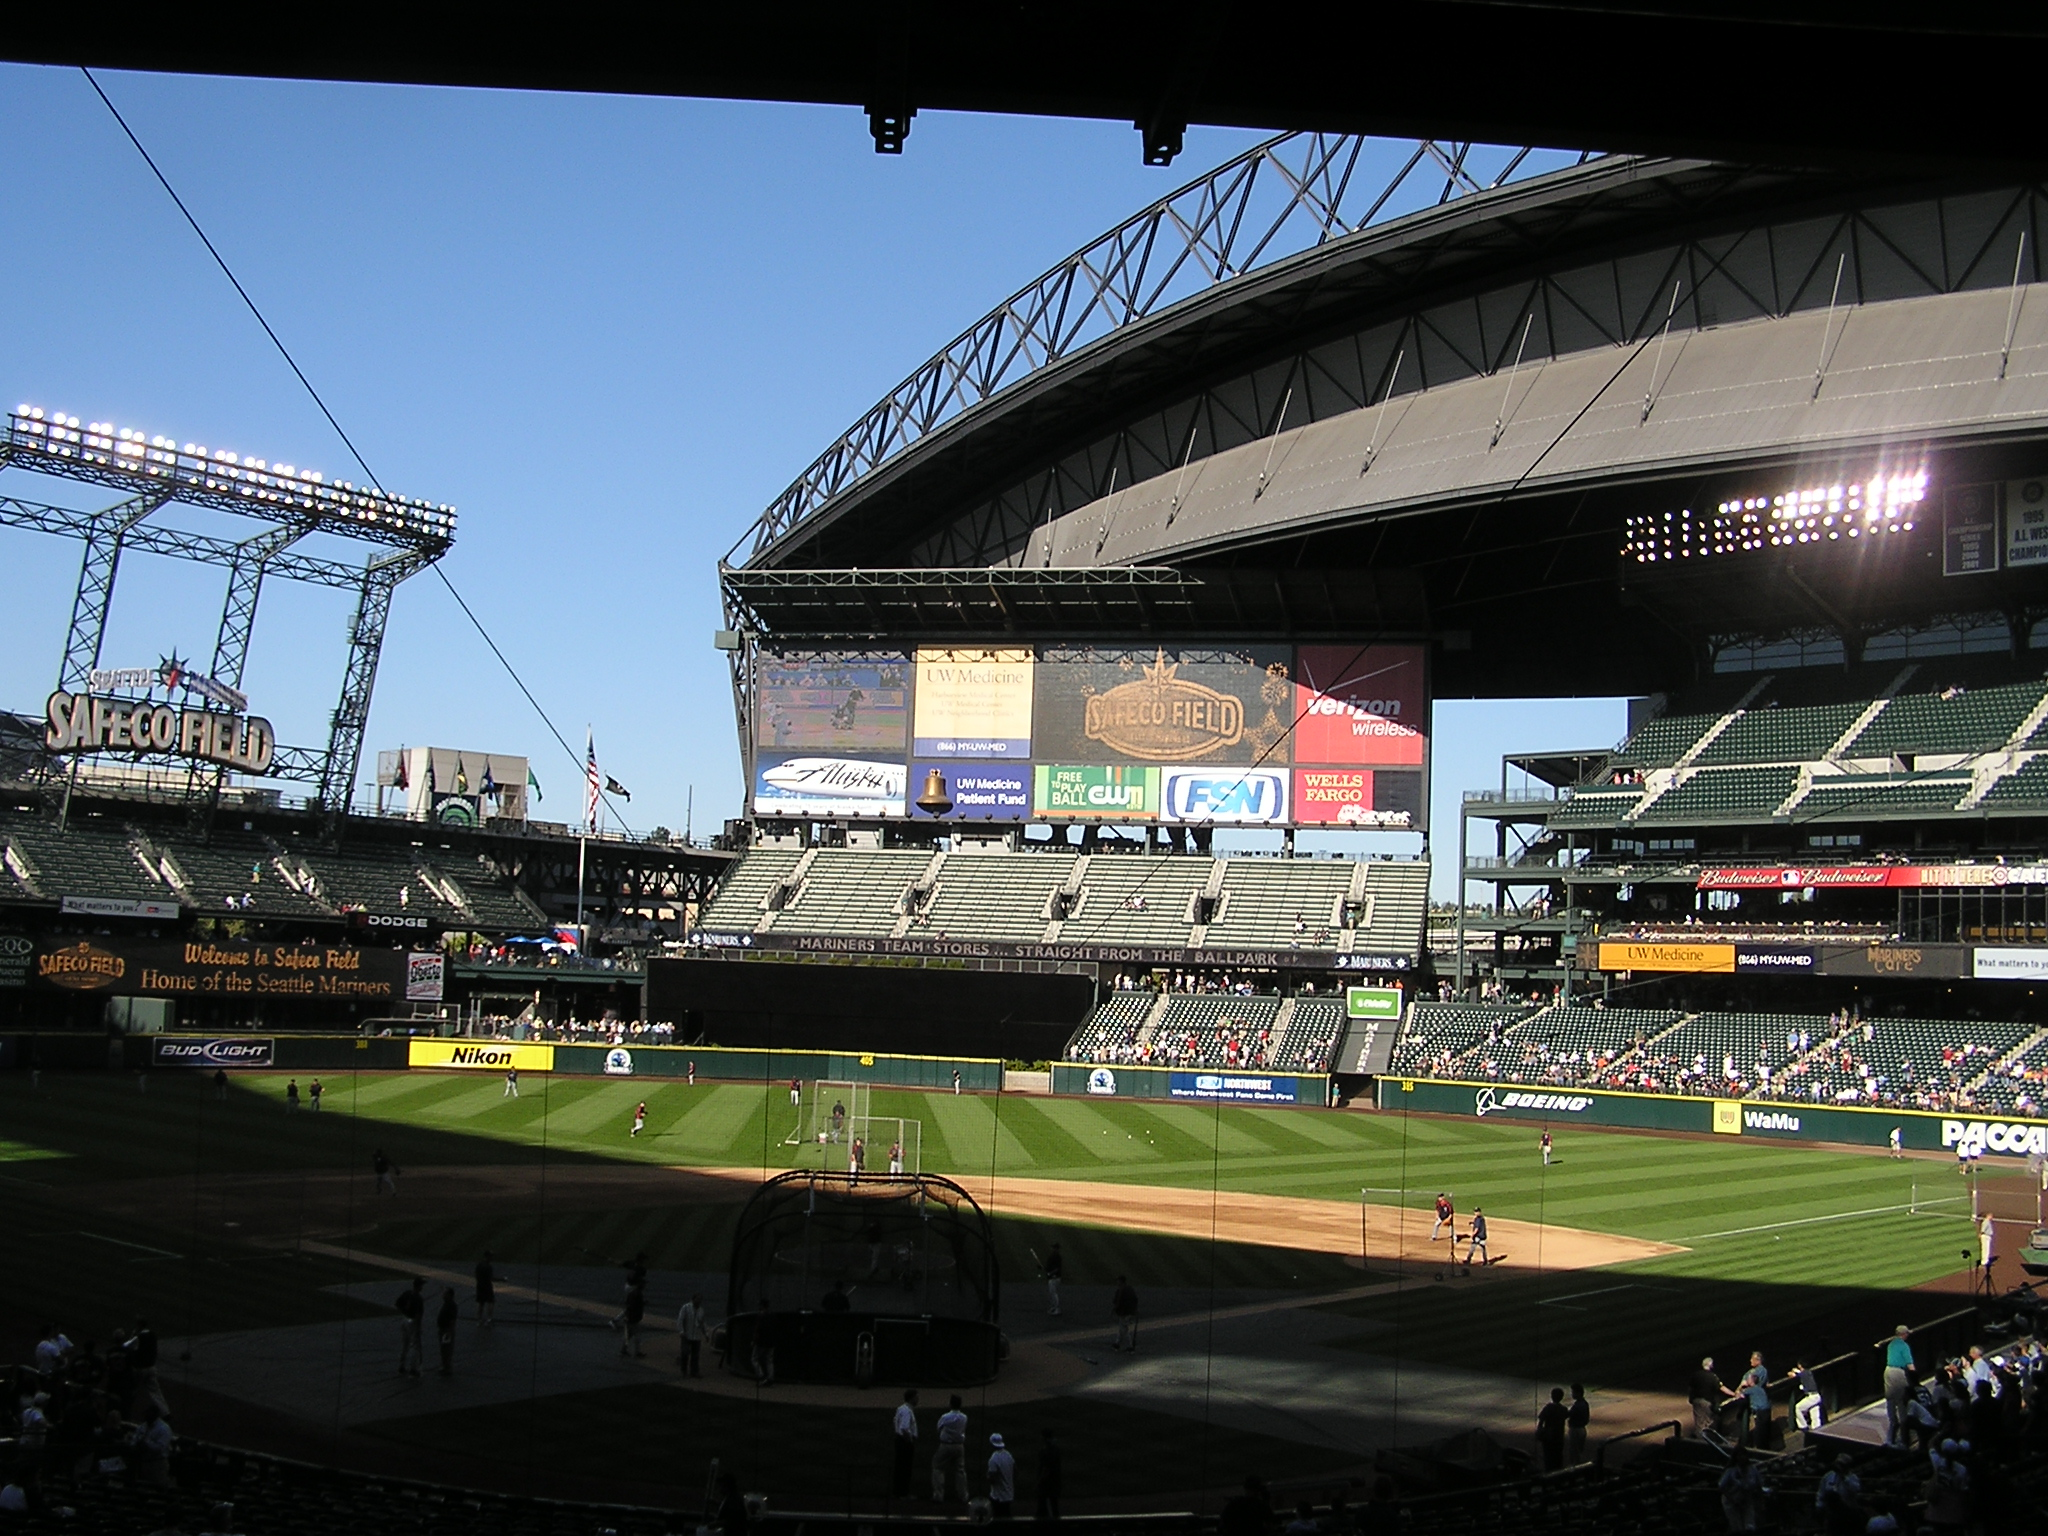 My first view of Safeco Field, Seattle Wa